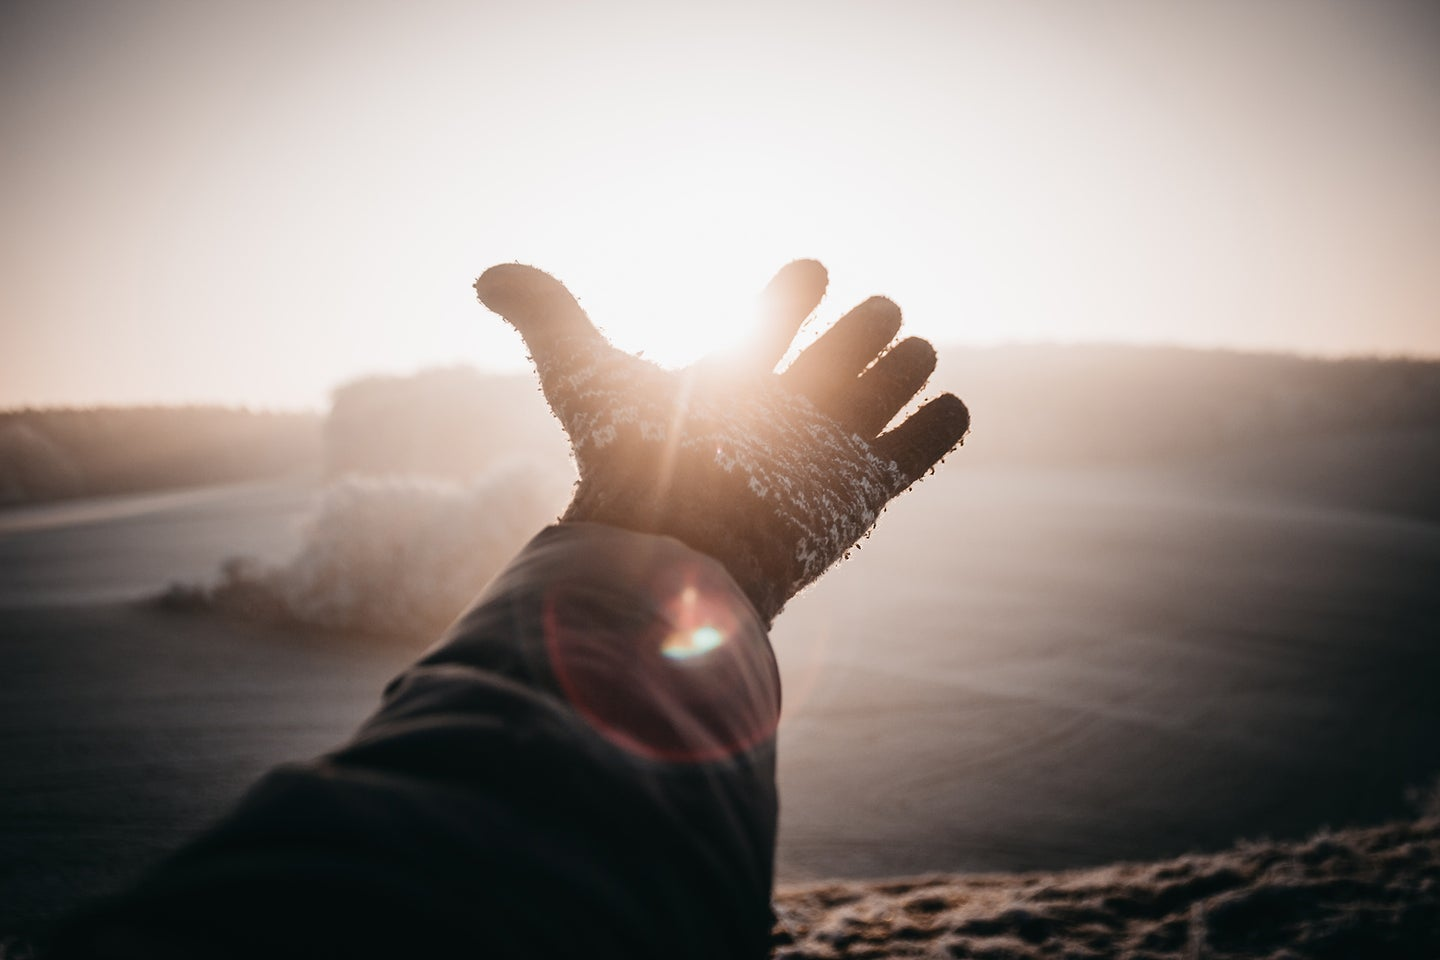 person with a glove reaching into the sky with the sun behind it